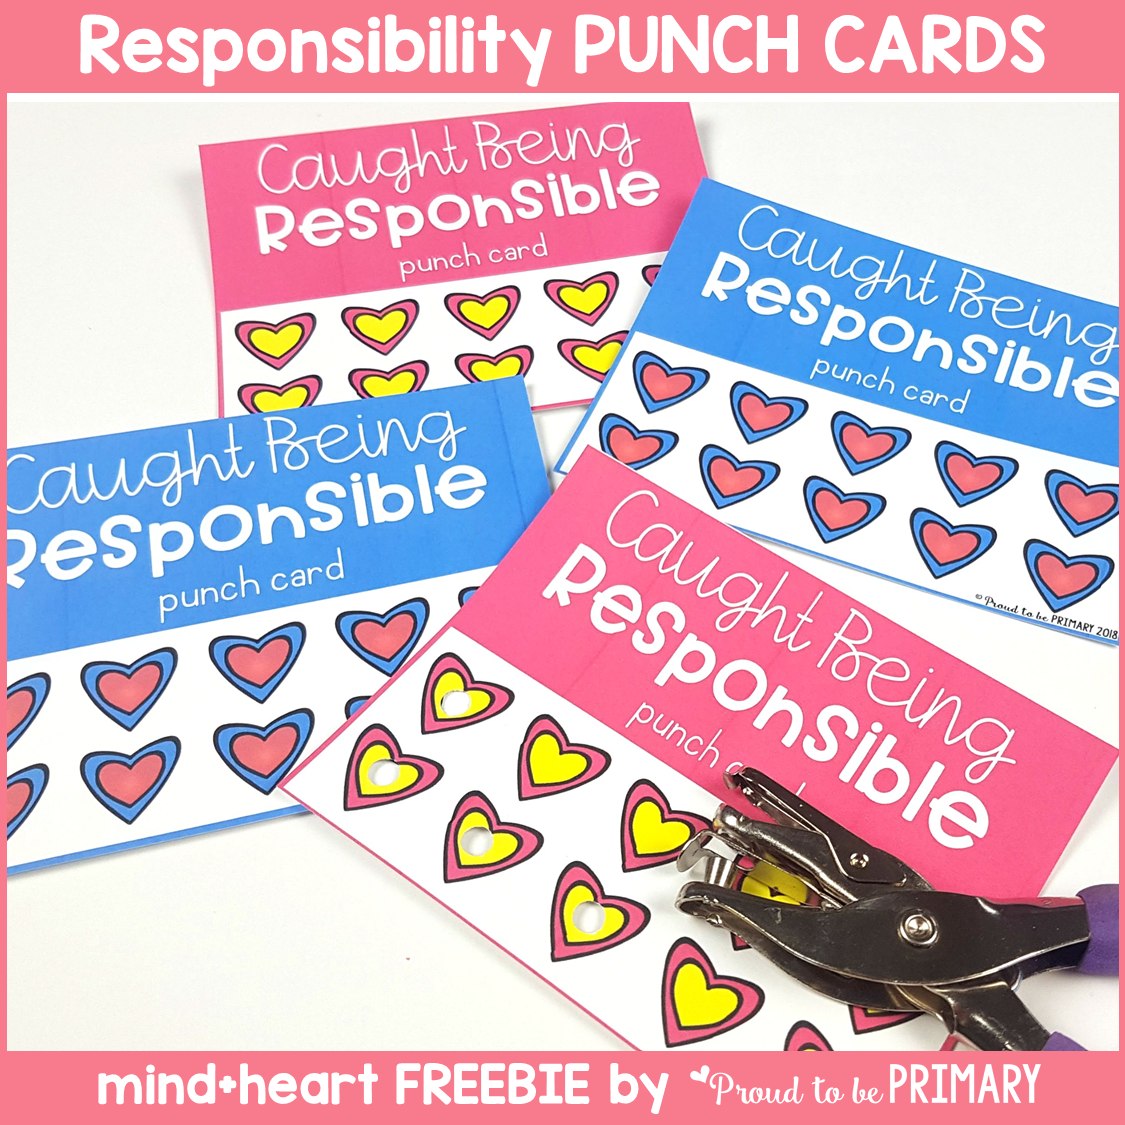 conflict resolution activities - responsibility punch cards